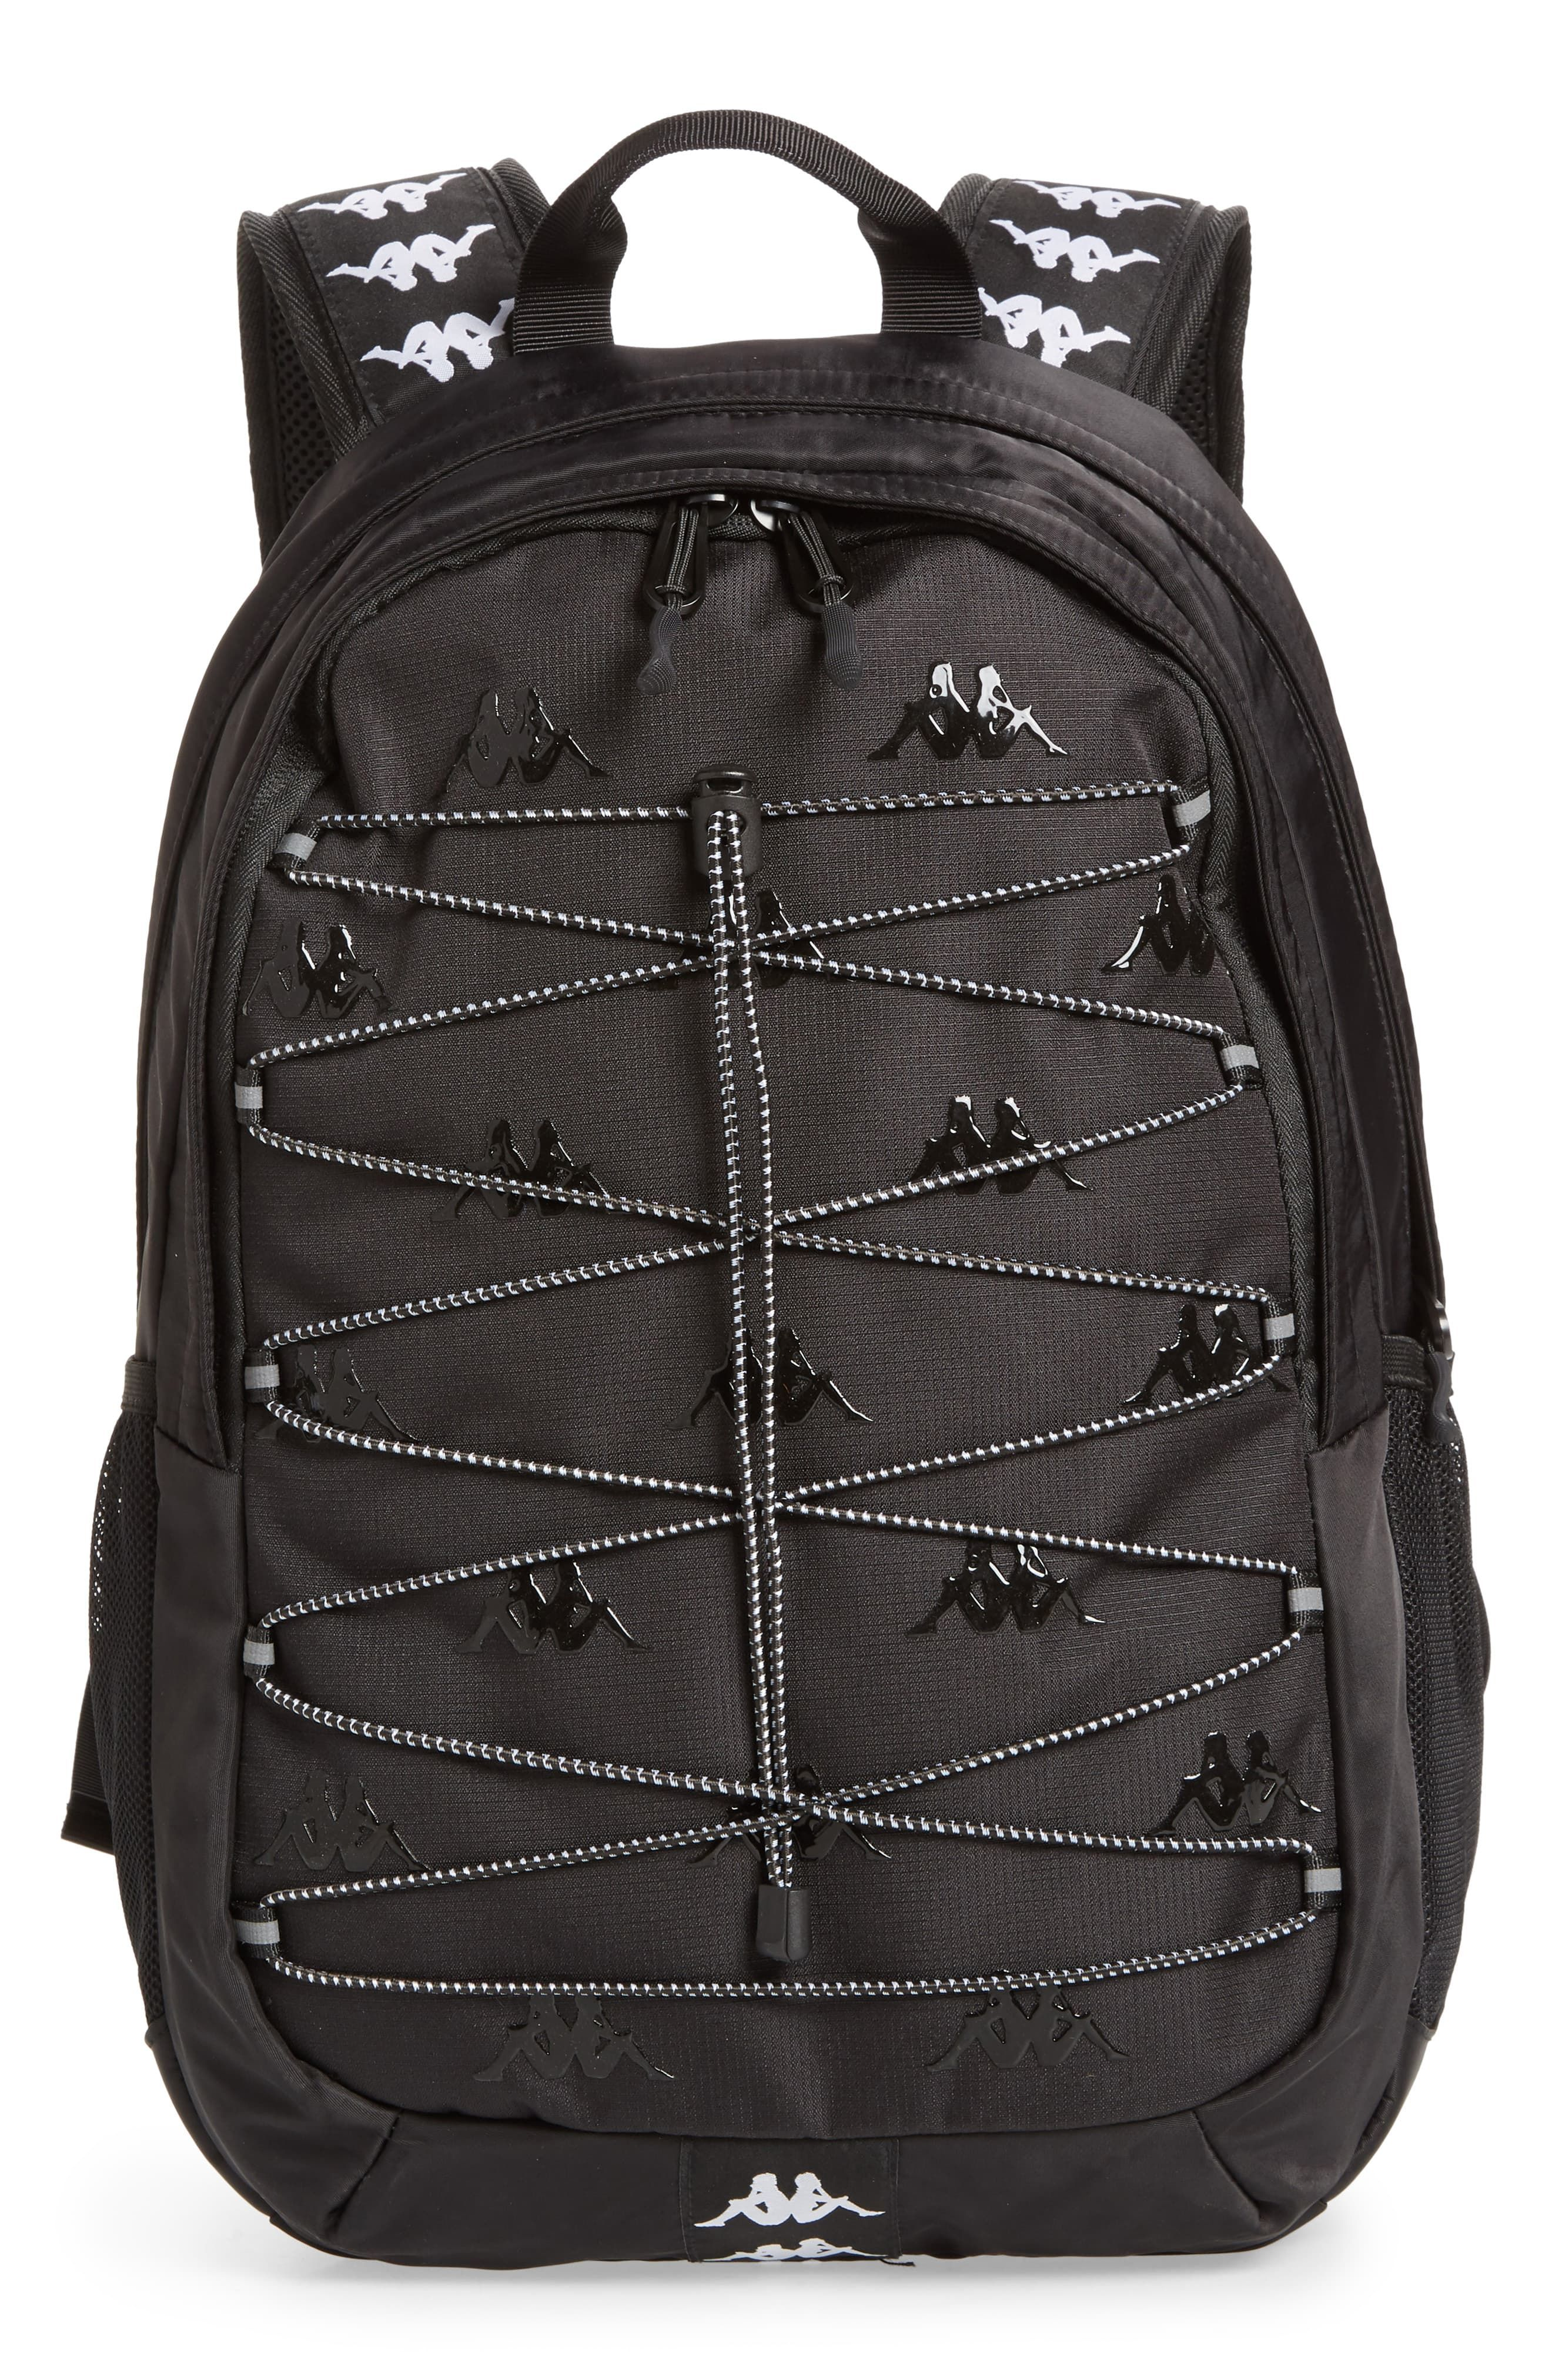 gonna Unravel Costretto  Men's Kappa Backpack - Black | Black backpack, Backpacks, Mens accessories